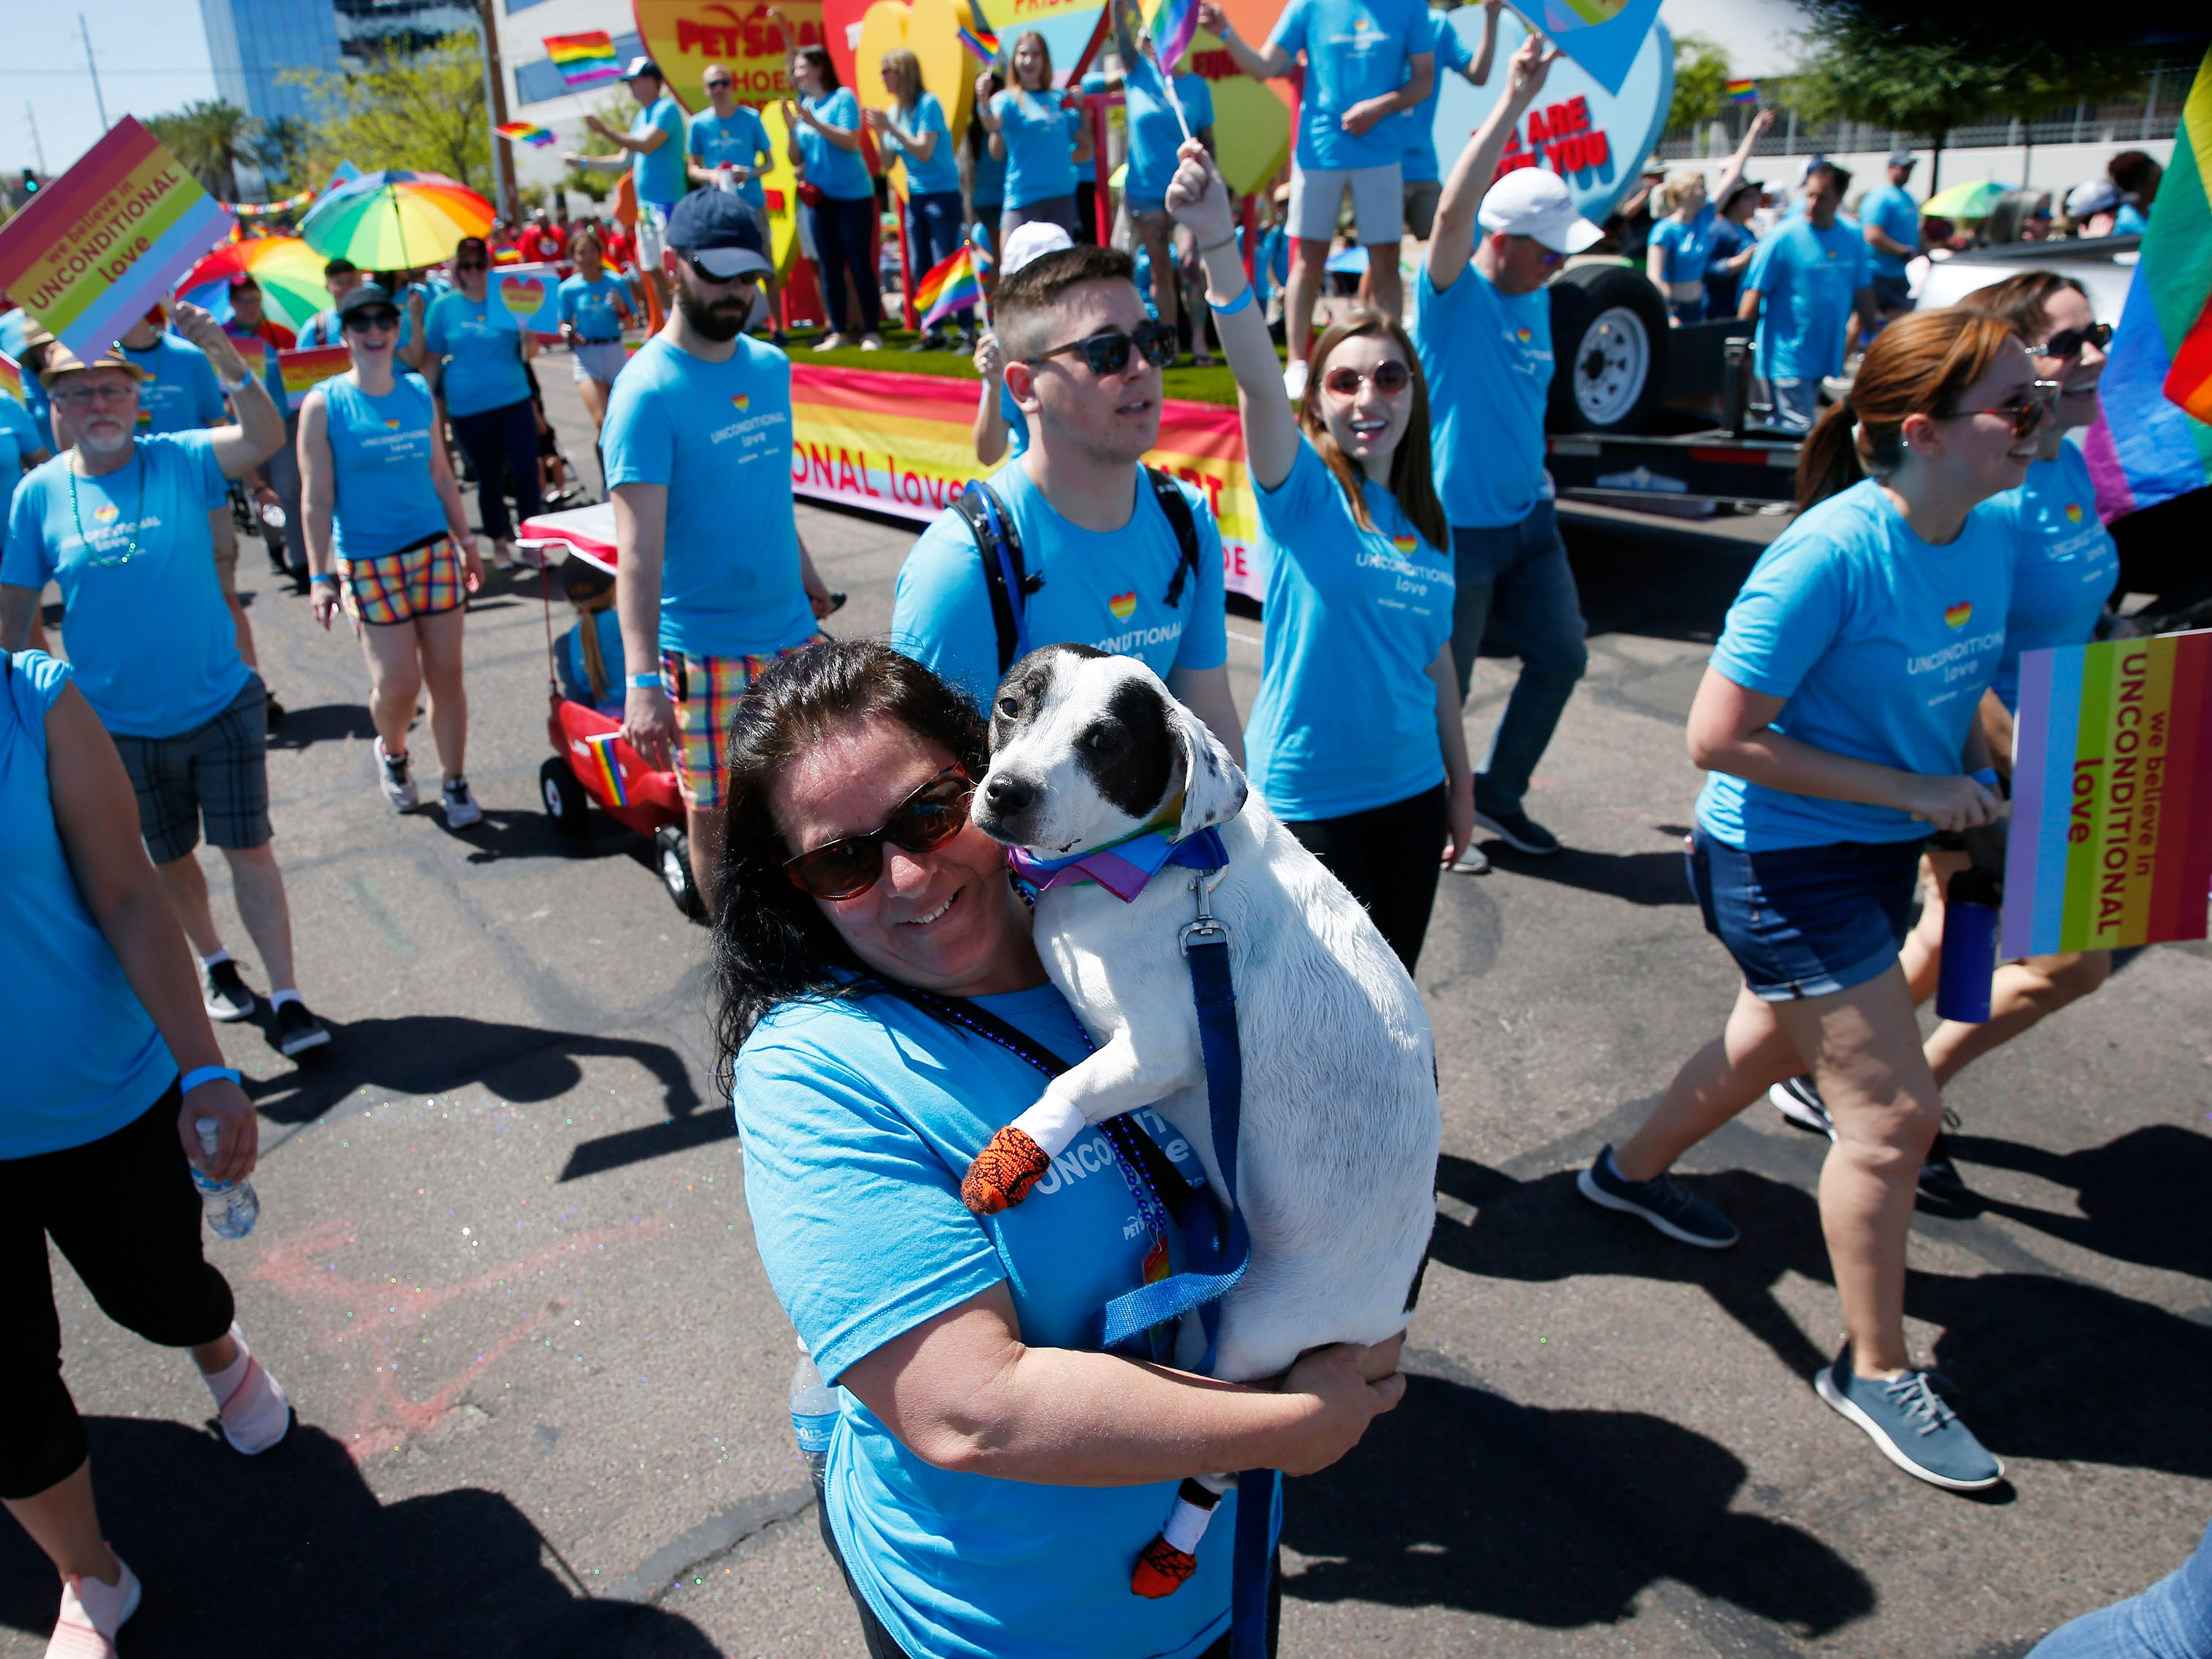 Participants with Petsmart march during the Phoenix Pride Parade on April 7, 2019.